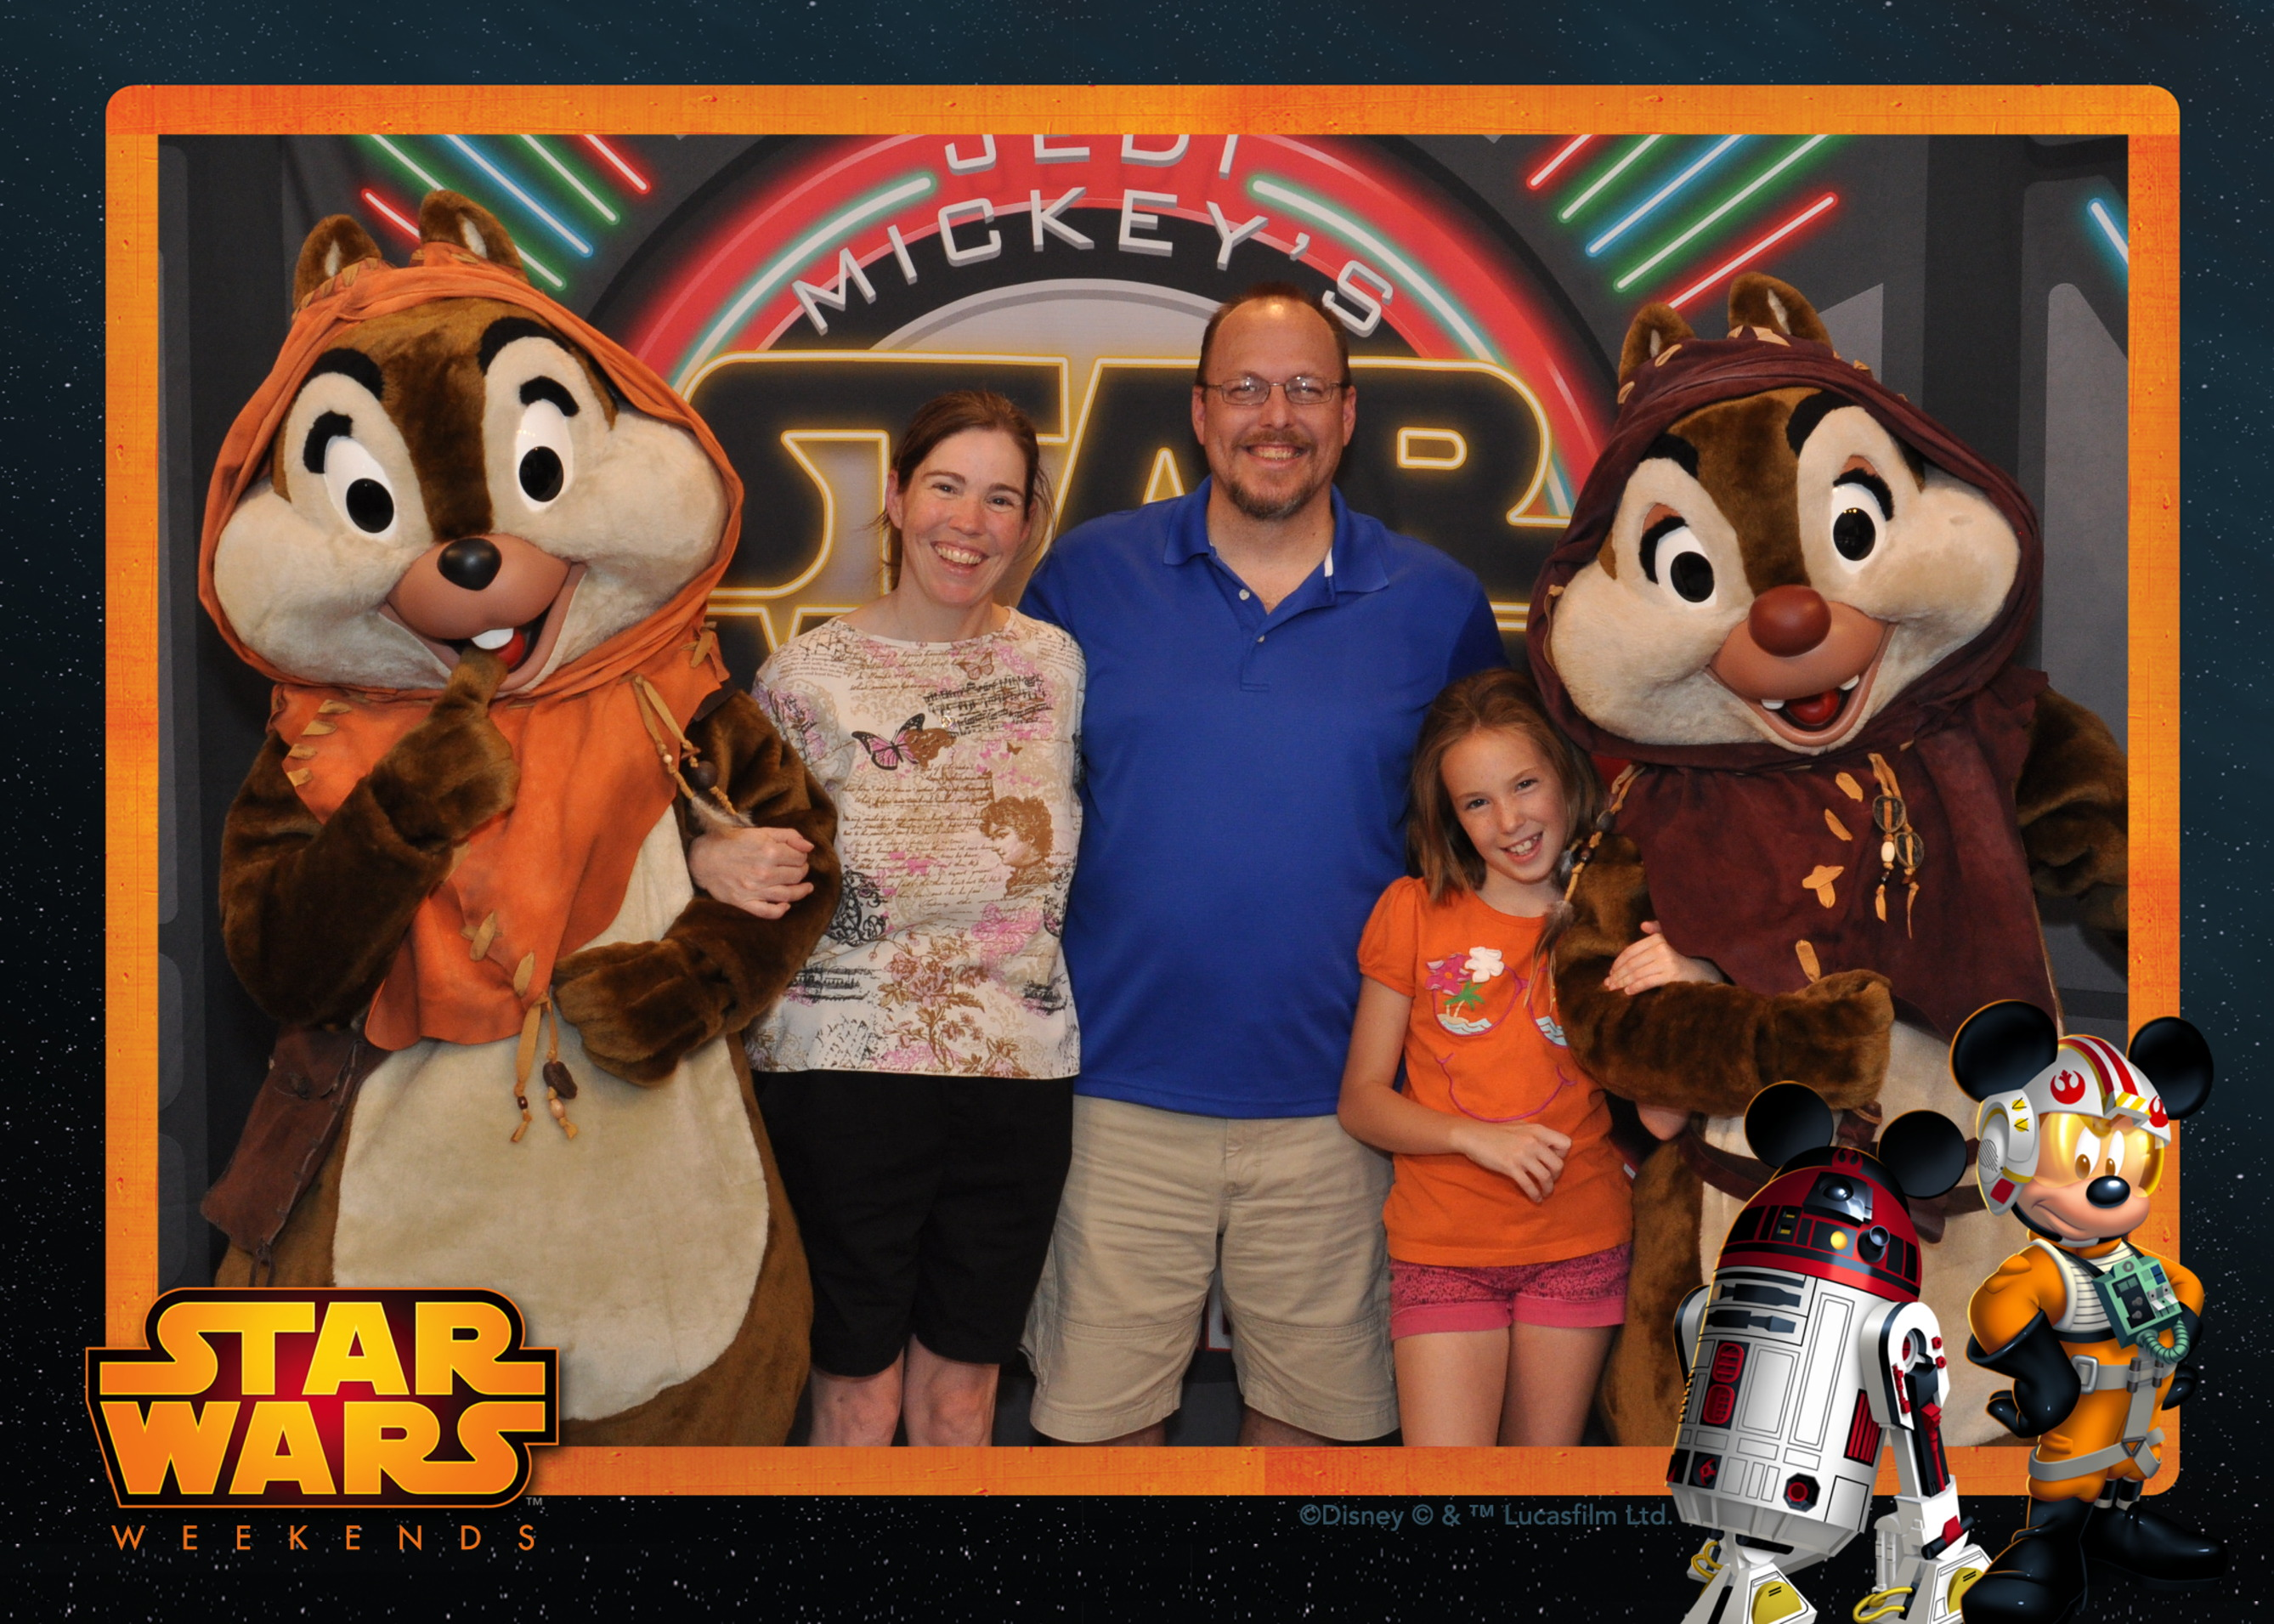 Ewok Chip n Dale at Jedi Mickey's Star Wars character dinner